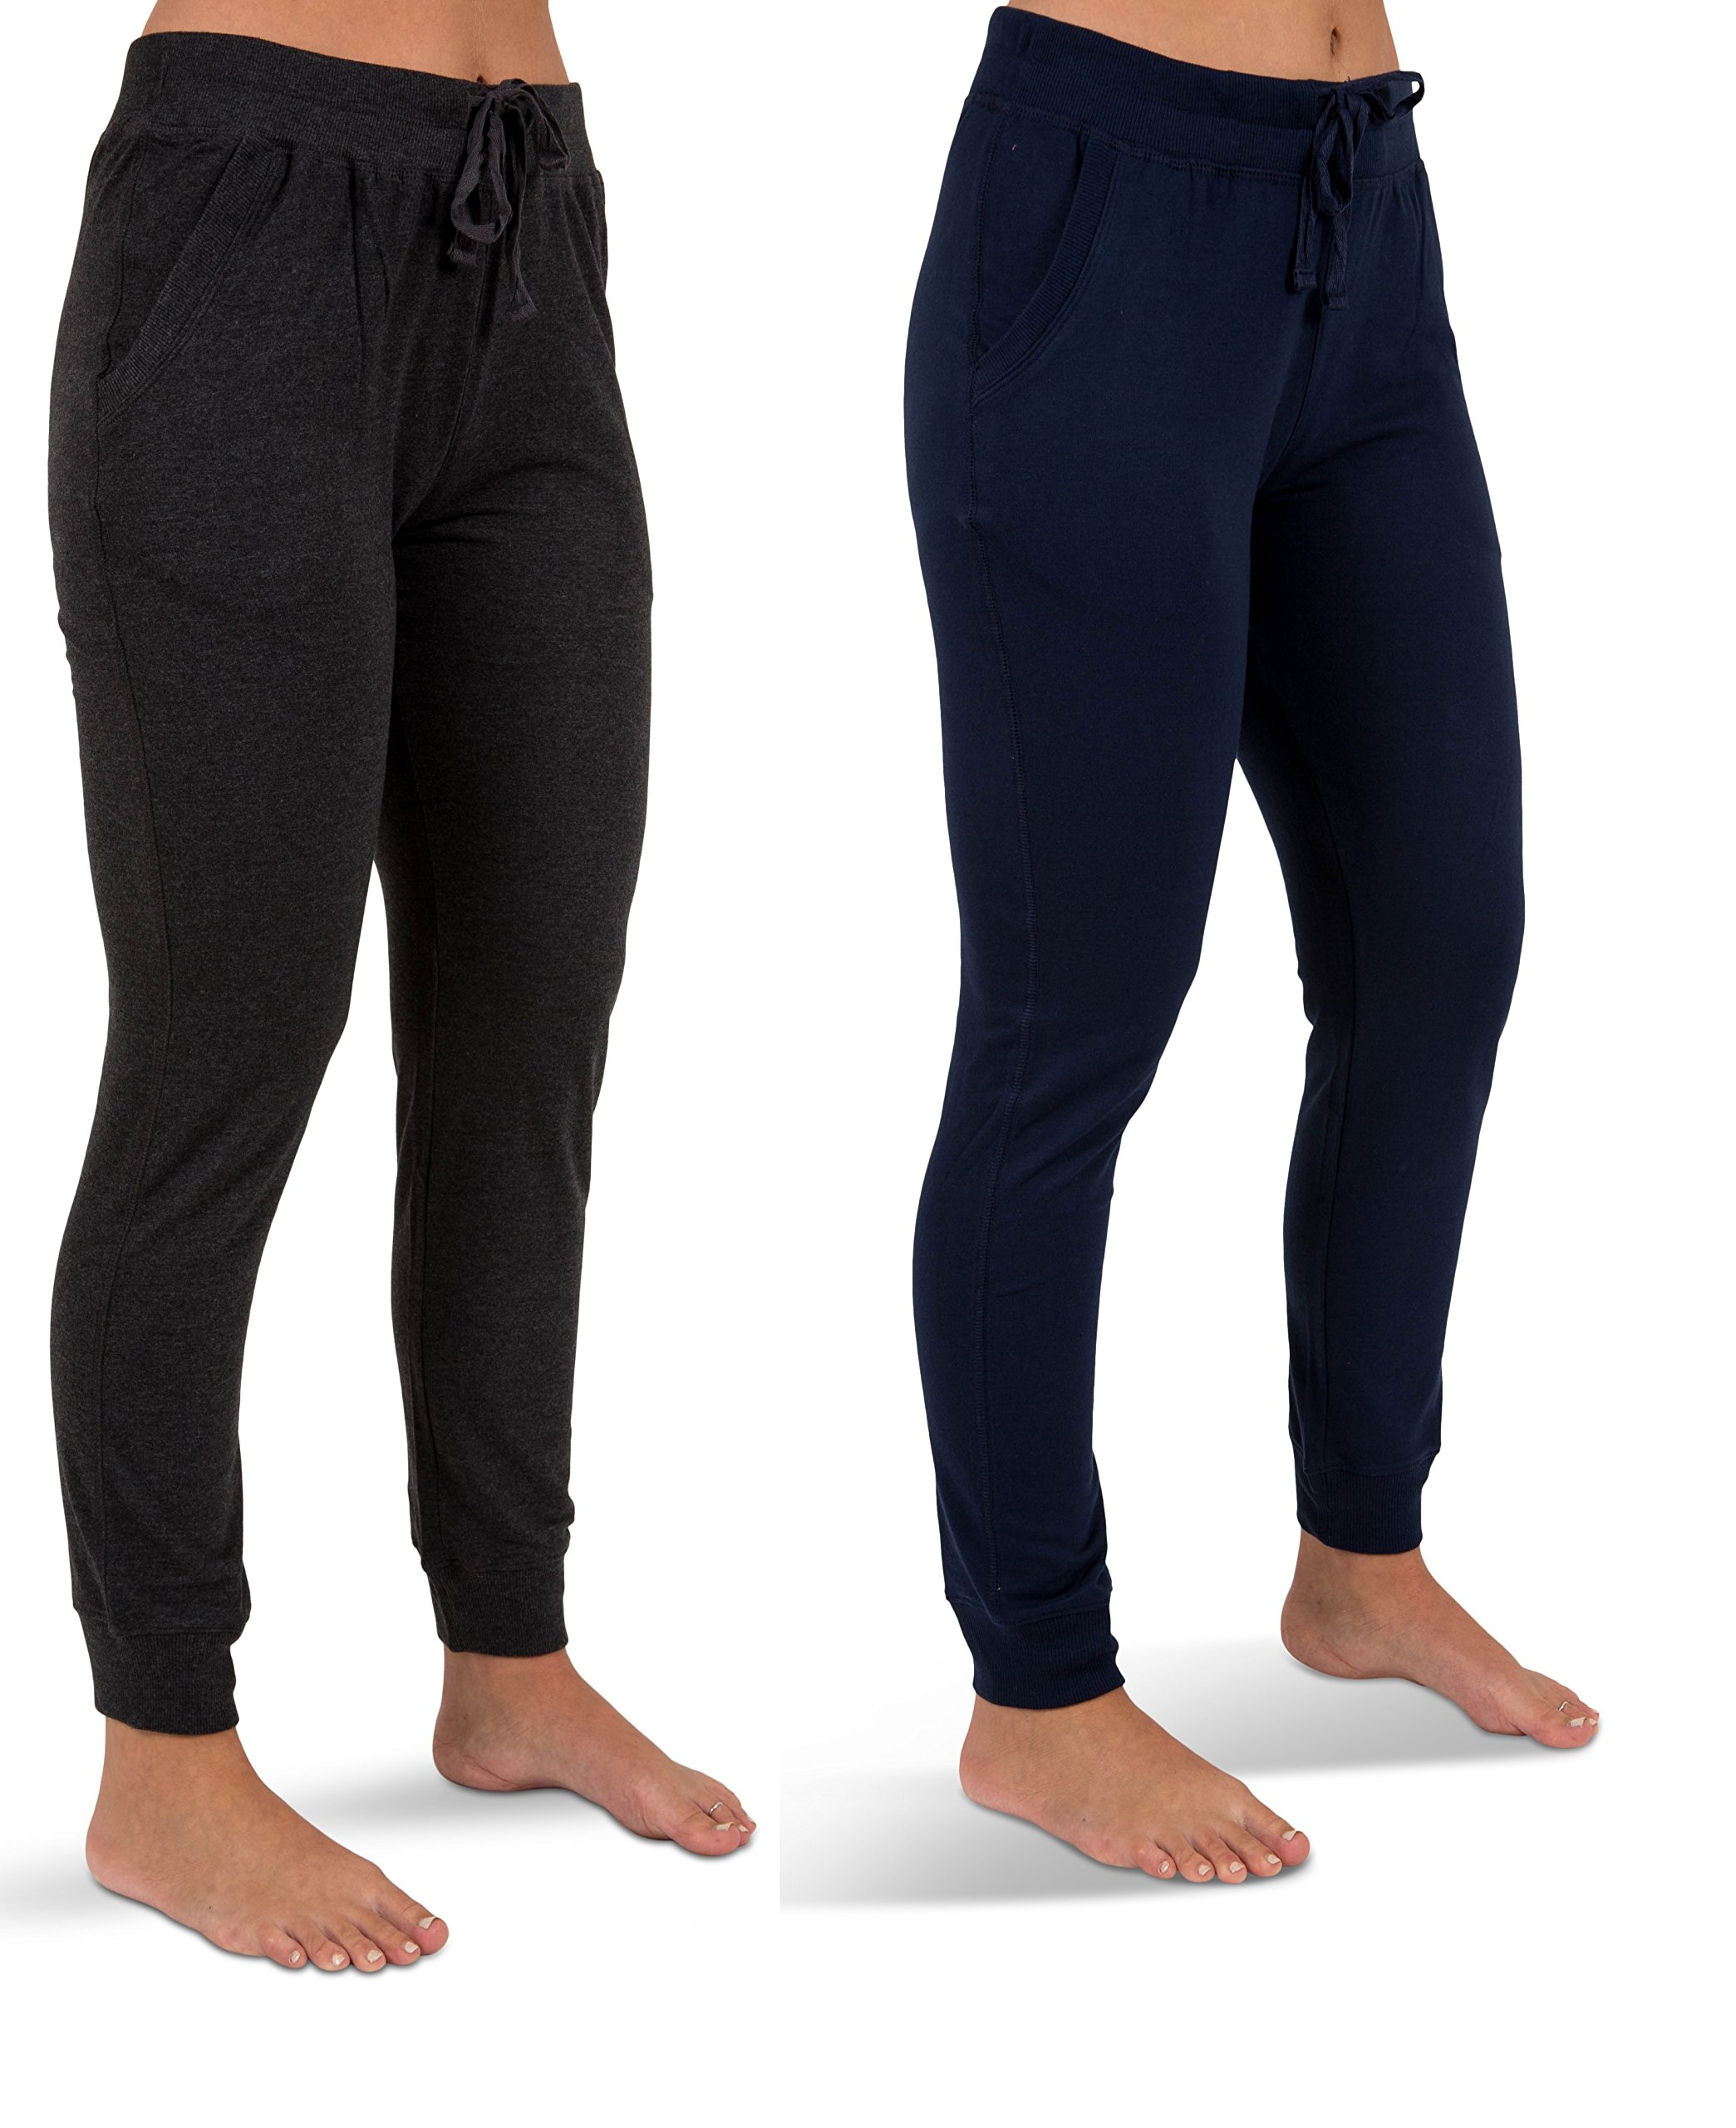 Sexy Basics Women's 2 Pack Yoga Activewear Jogger Capri Cropped Sweat Lounge Pants (2 Pack- Navy/Charcoal, Large)